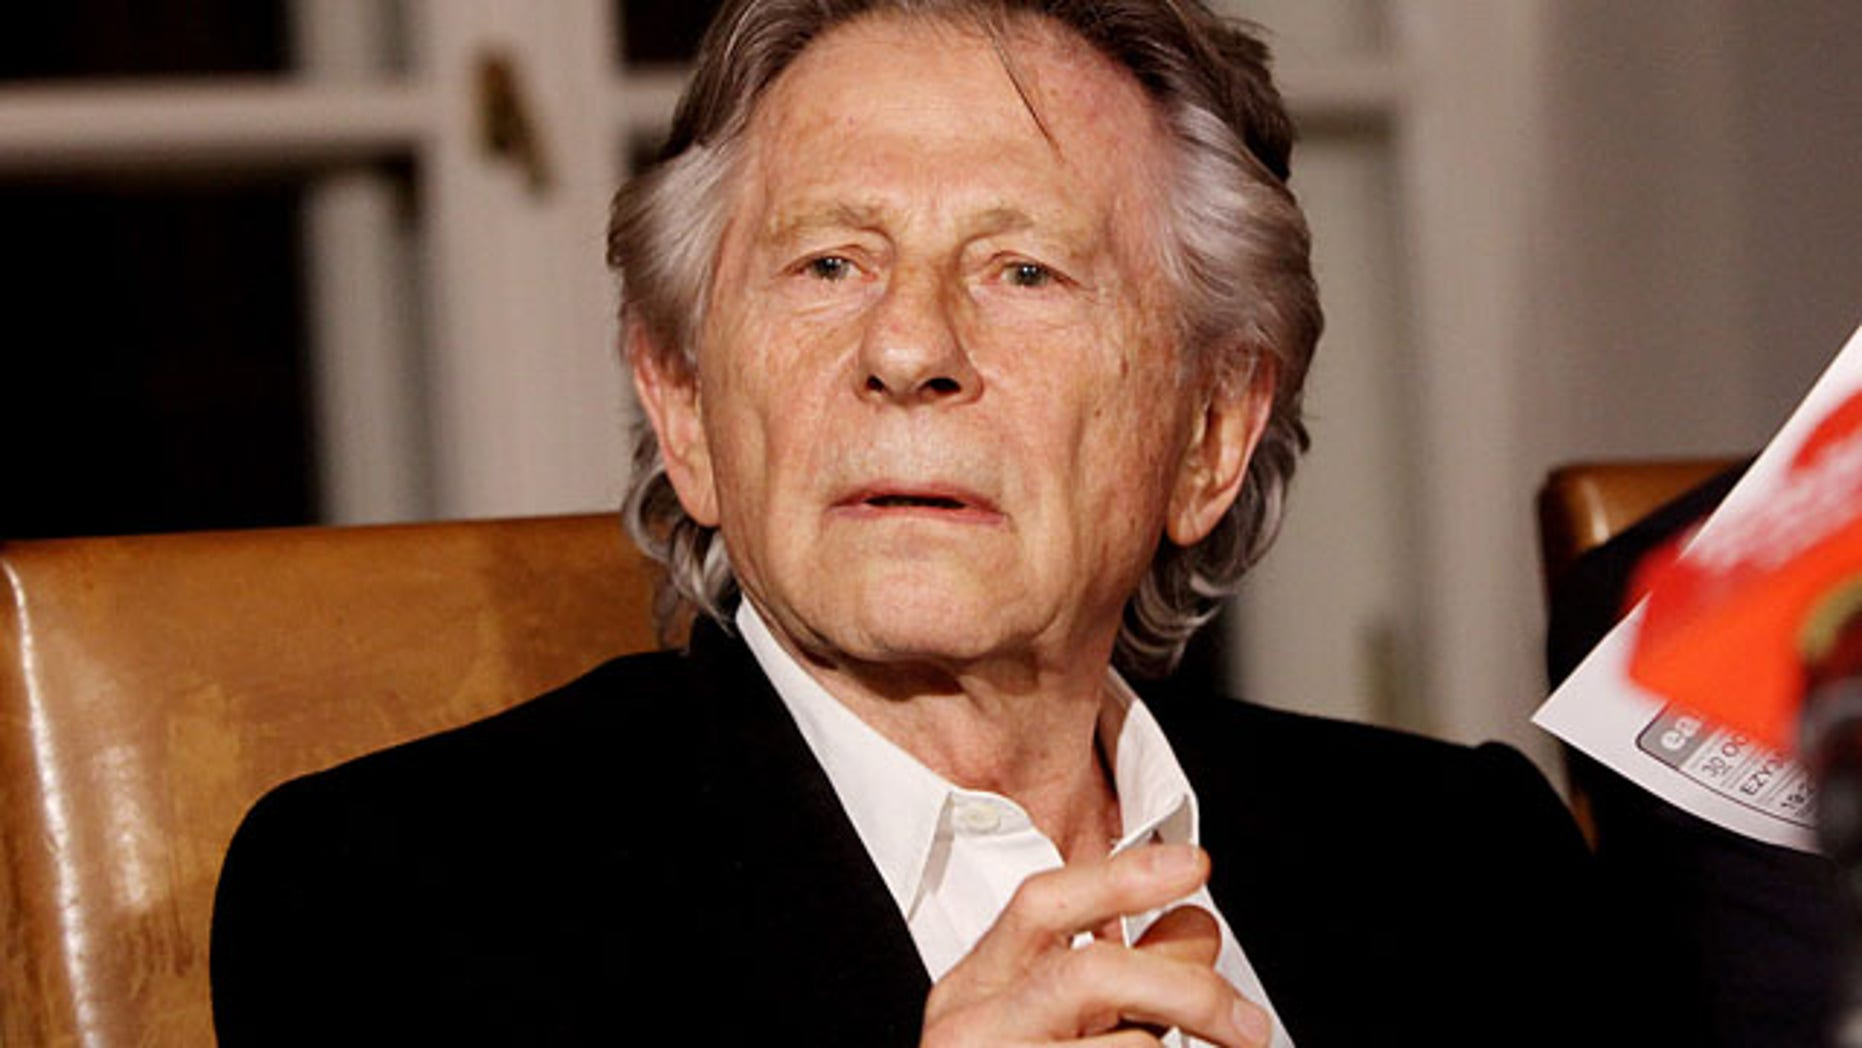 FILE - In this Oct. 30, 2015 file photo filmmaker Roman Polanski tells reporters he can breath with relief after a Polish judge ruled that the law forbids his extradition to the U.S., where in 1977 he pleaded guilty to having sex with a minor. (AP Photo/Jarek Praszkiewicz, file)